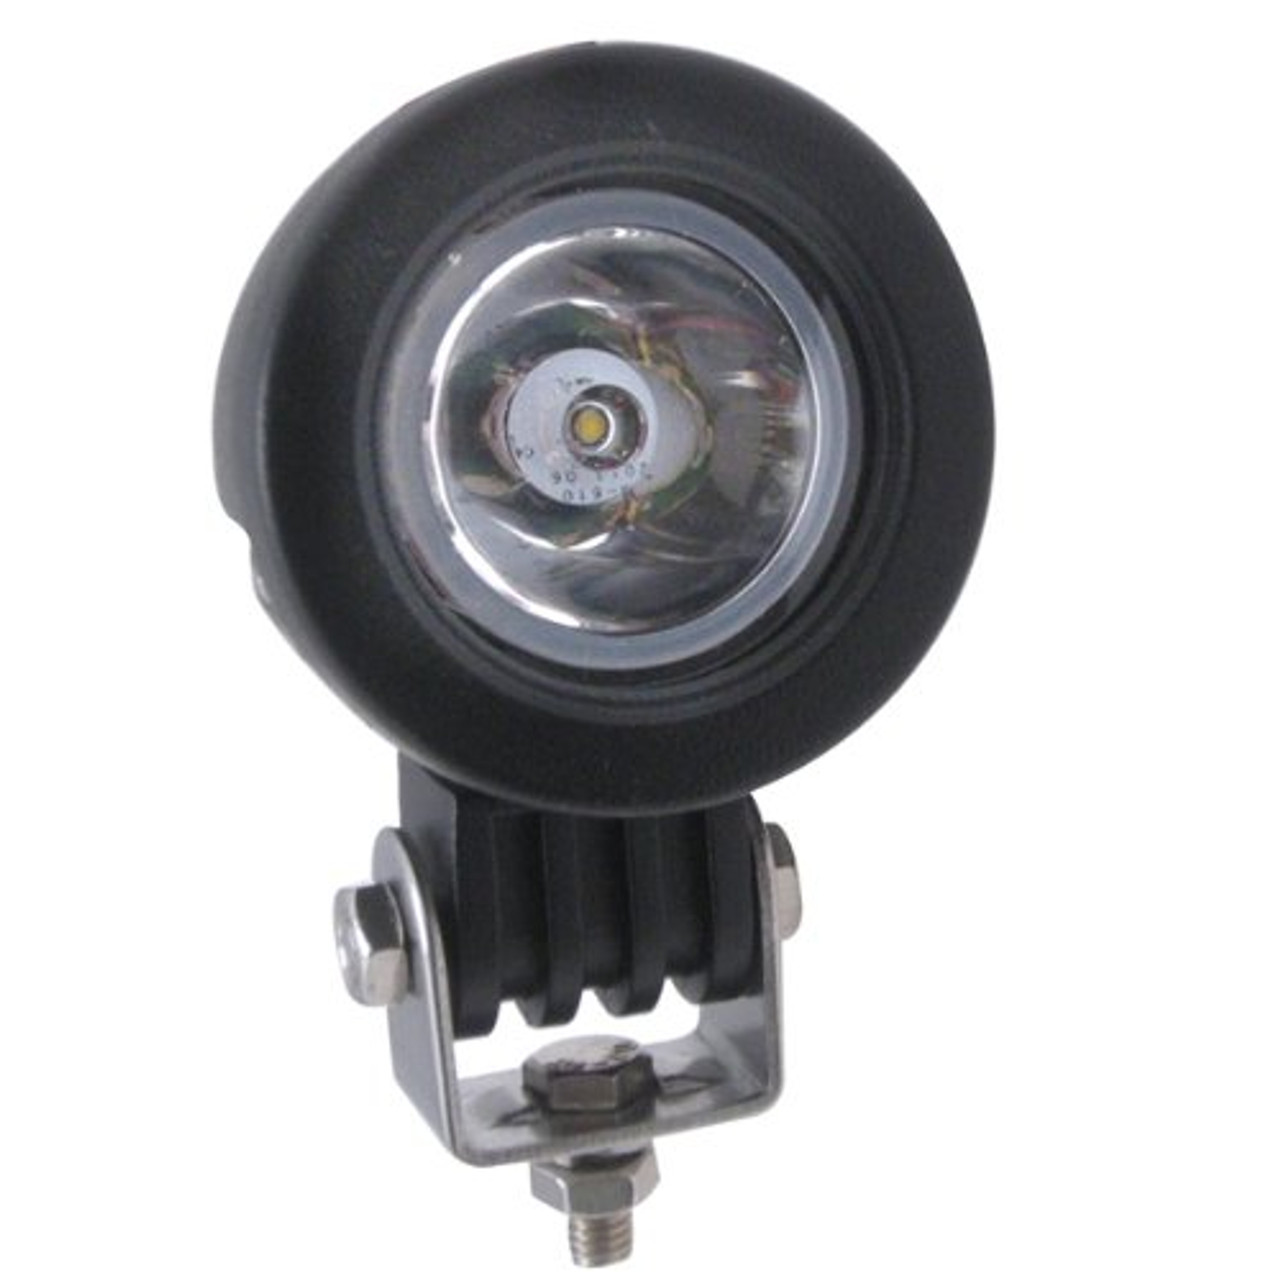 xtreme lighting products 1in 10 watt cree led round work light